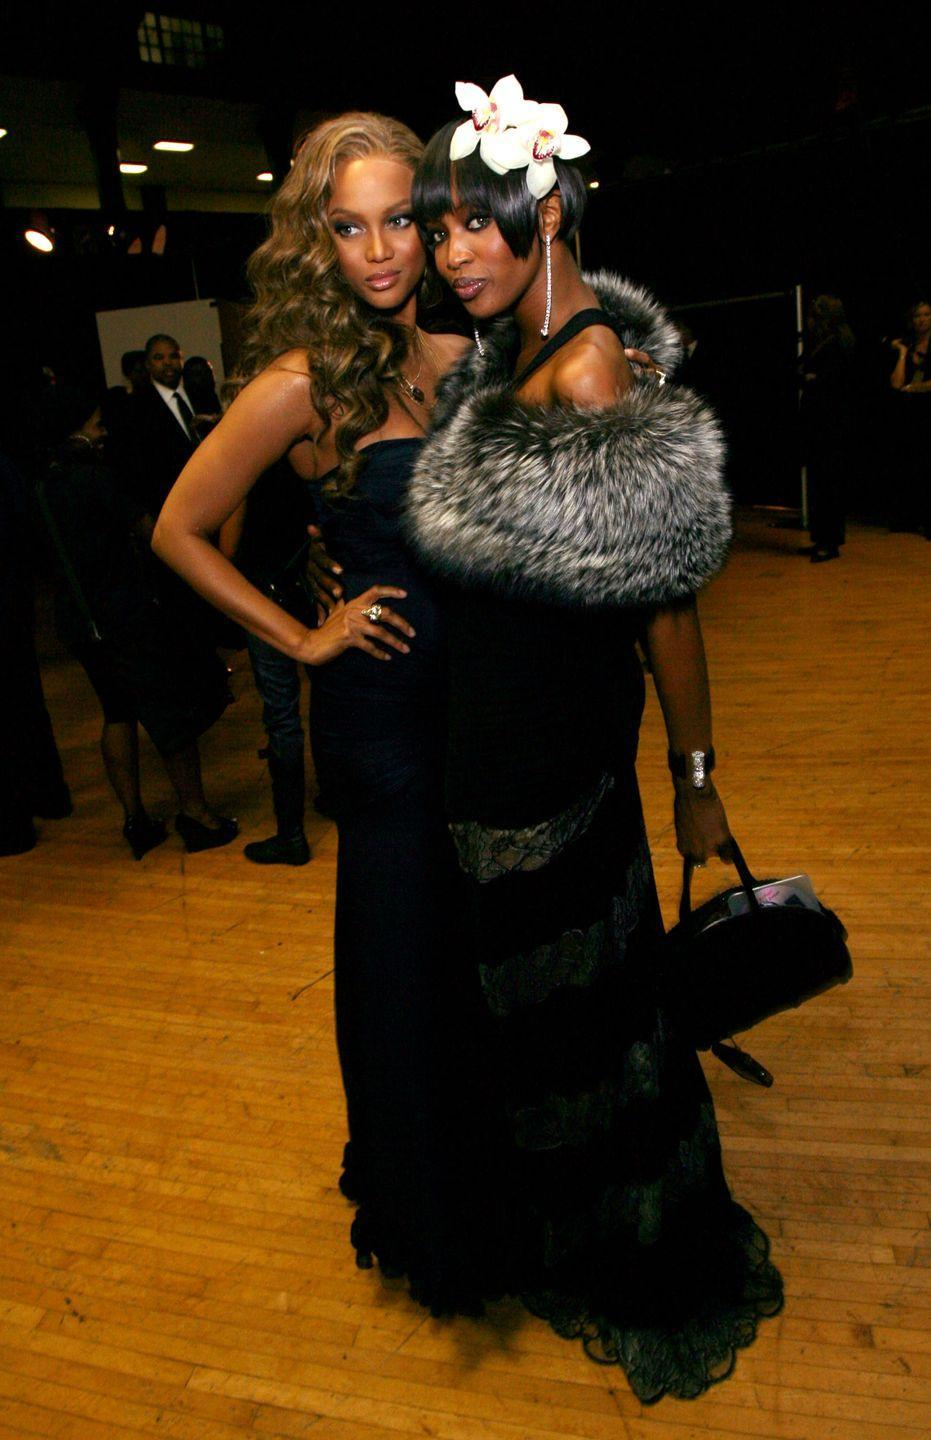 """<p>Years later, Tyra and Naomi seemed to have buried the hatchet, eventually reuniting together on Tyra's talk show in 2005 to clear the air. But rumors of a <a href=""""https://www.lofficielusa.com/pop%20culture/naomi-campbell-tyra-banks-feud-instagram"""" rel=""""nofollow noopener"""" target=""""_blank"""" data-ylk=""""slk:re-ignited feud recently returned"""" class=""""link rapid-noclick-resp"""">re-ignited feud recently returned</a> in 2020, with Naomi sharing an article on her Instagram titled """"Here's Why Fans Are Starting To Think Tyra Banks Is The Real Mean Girl, Not Naomi Campbell."""" Could it be that the beef between the two models isn't over after all?</p>"""